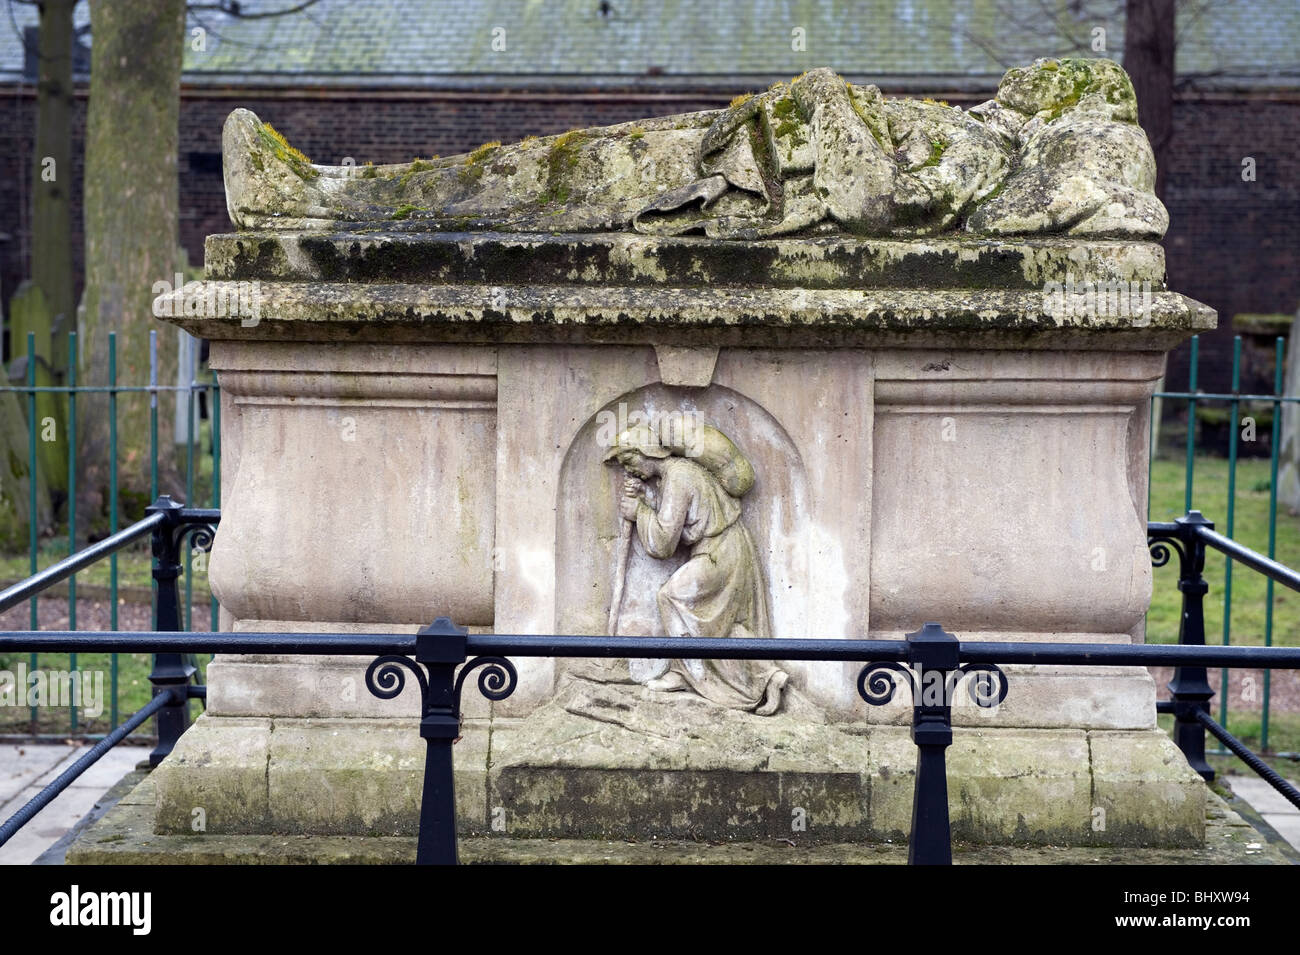 Bunhill Fields, London, Britain, UK. Grave of John Bunyan, author of Pilgrims Progress. Died 1668. - Stock Image